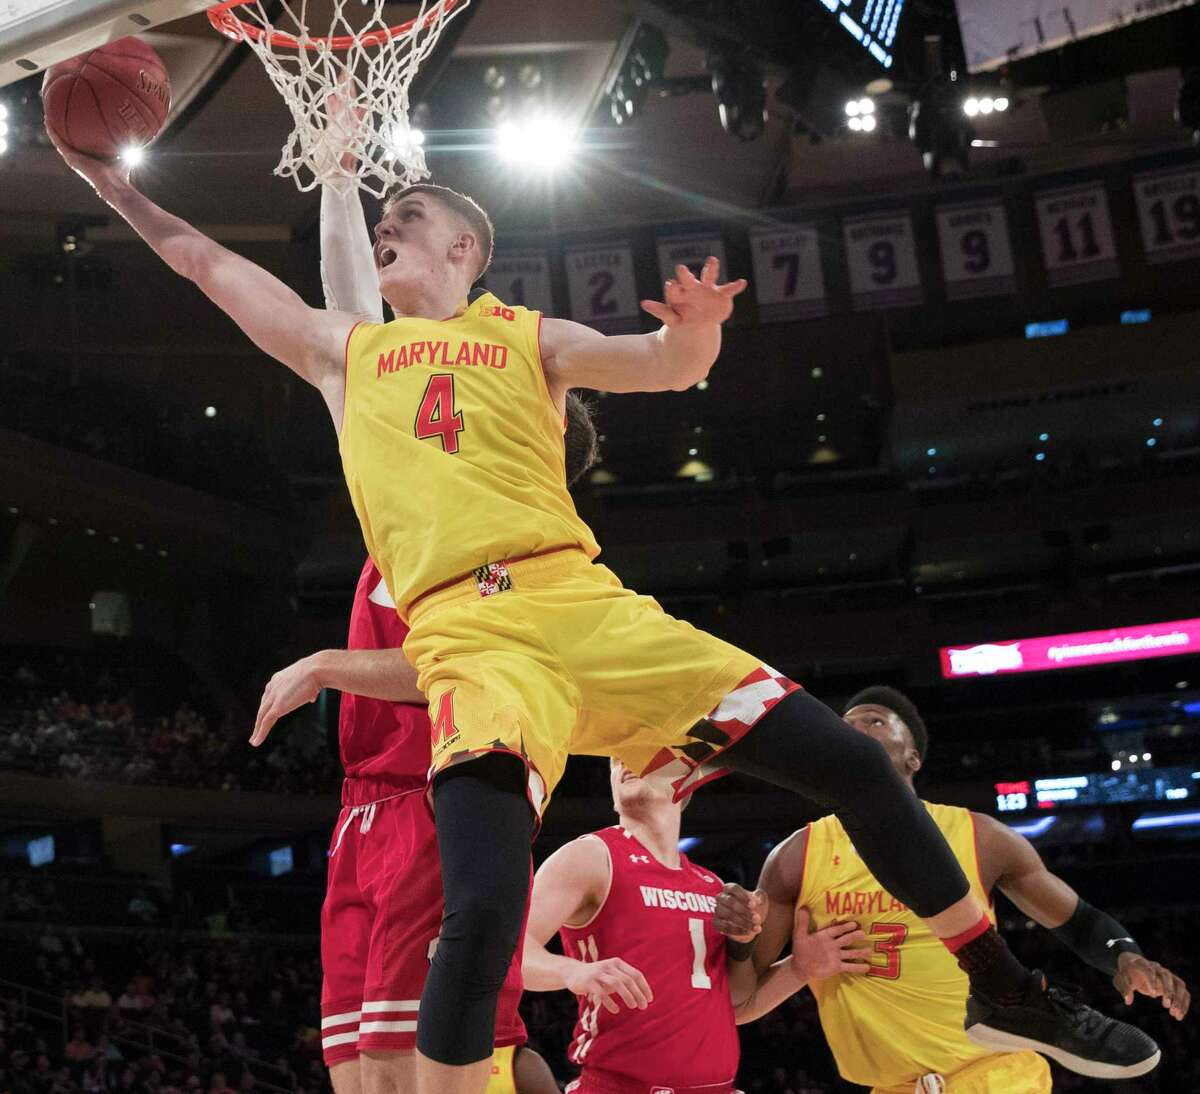 Maryland guard Kevin Huerter (4) goes to the basket during the second half of an NCAA college basketball game against Wisconsin in the second round of the Big Ten conference tournament, Thursday, March 1, 2018, at Madison Square Garden in New York. Wisconsin won 59-54. (AP Photo/Mary Altaffer)